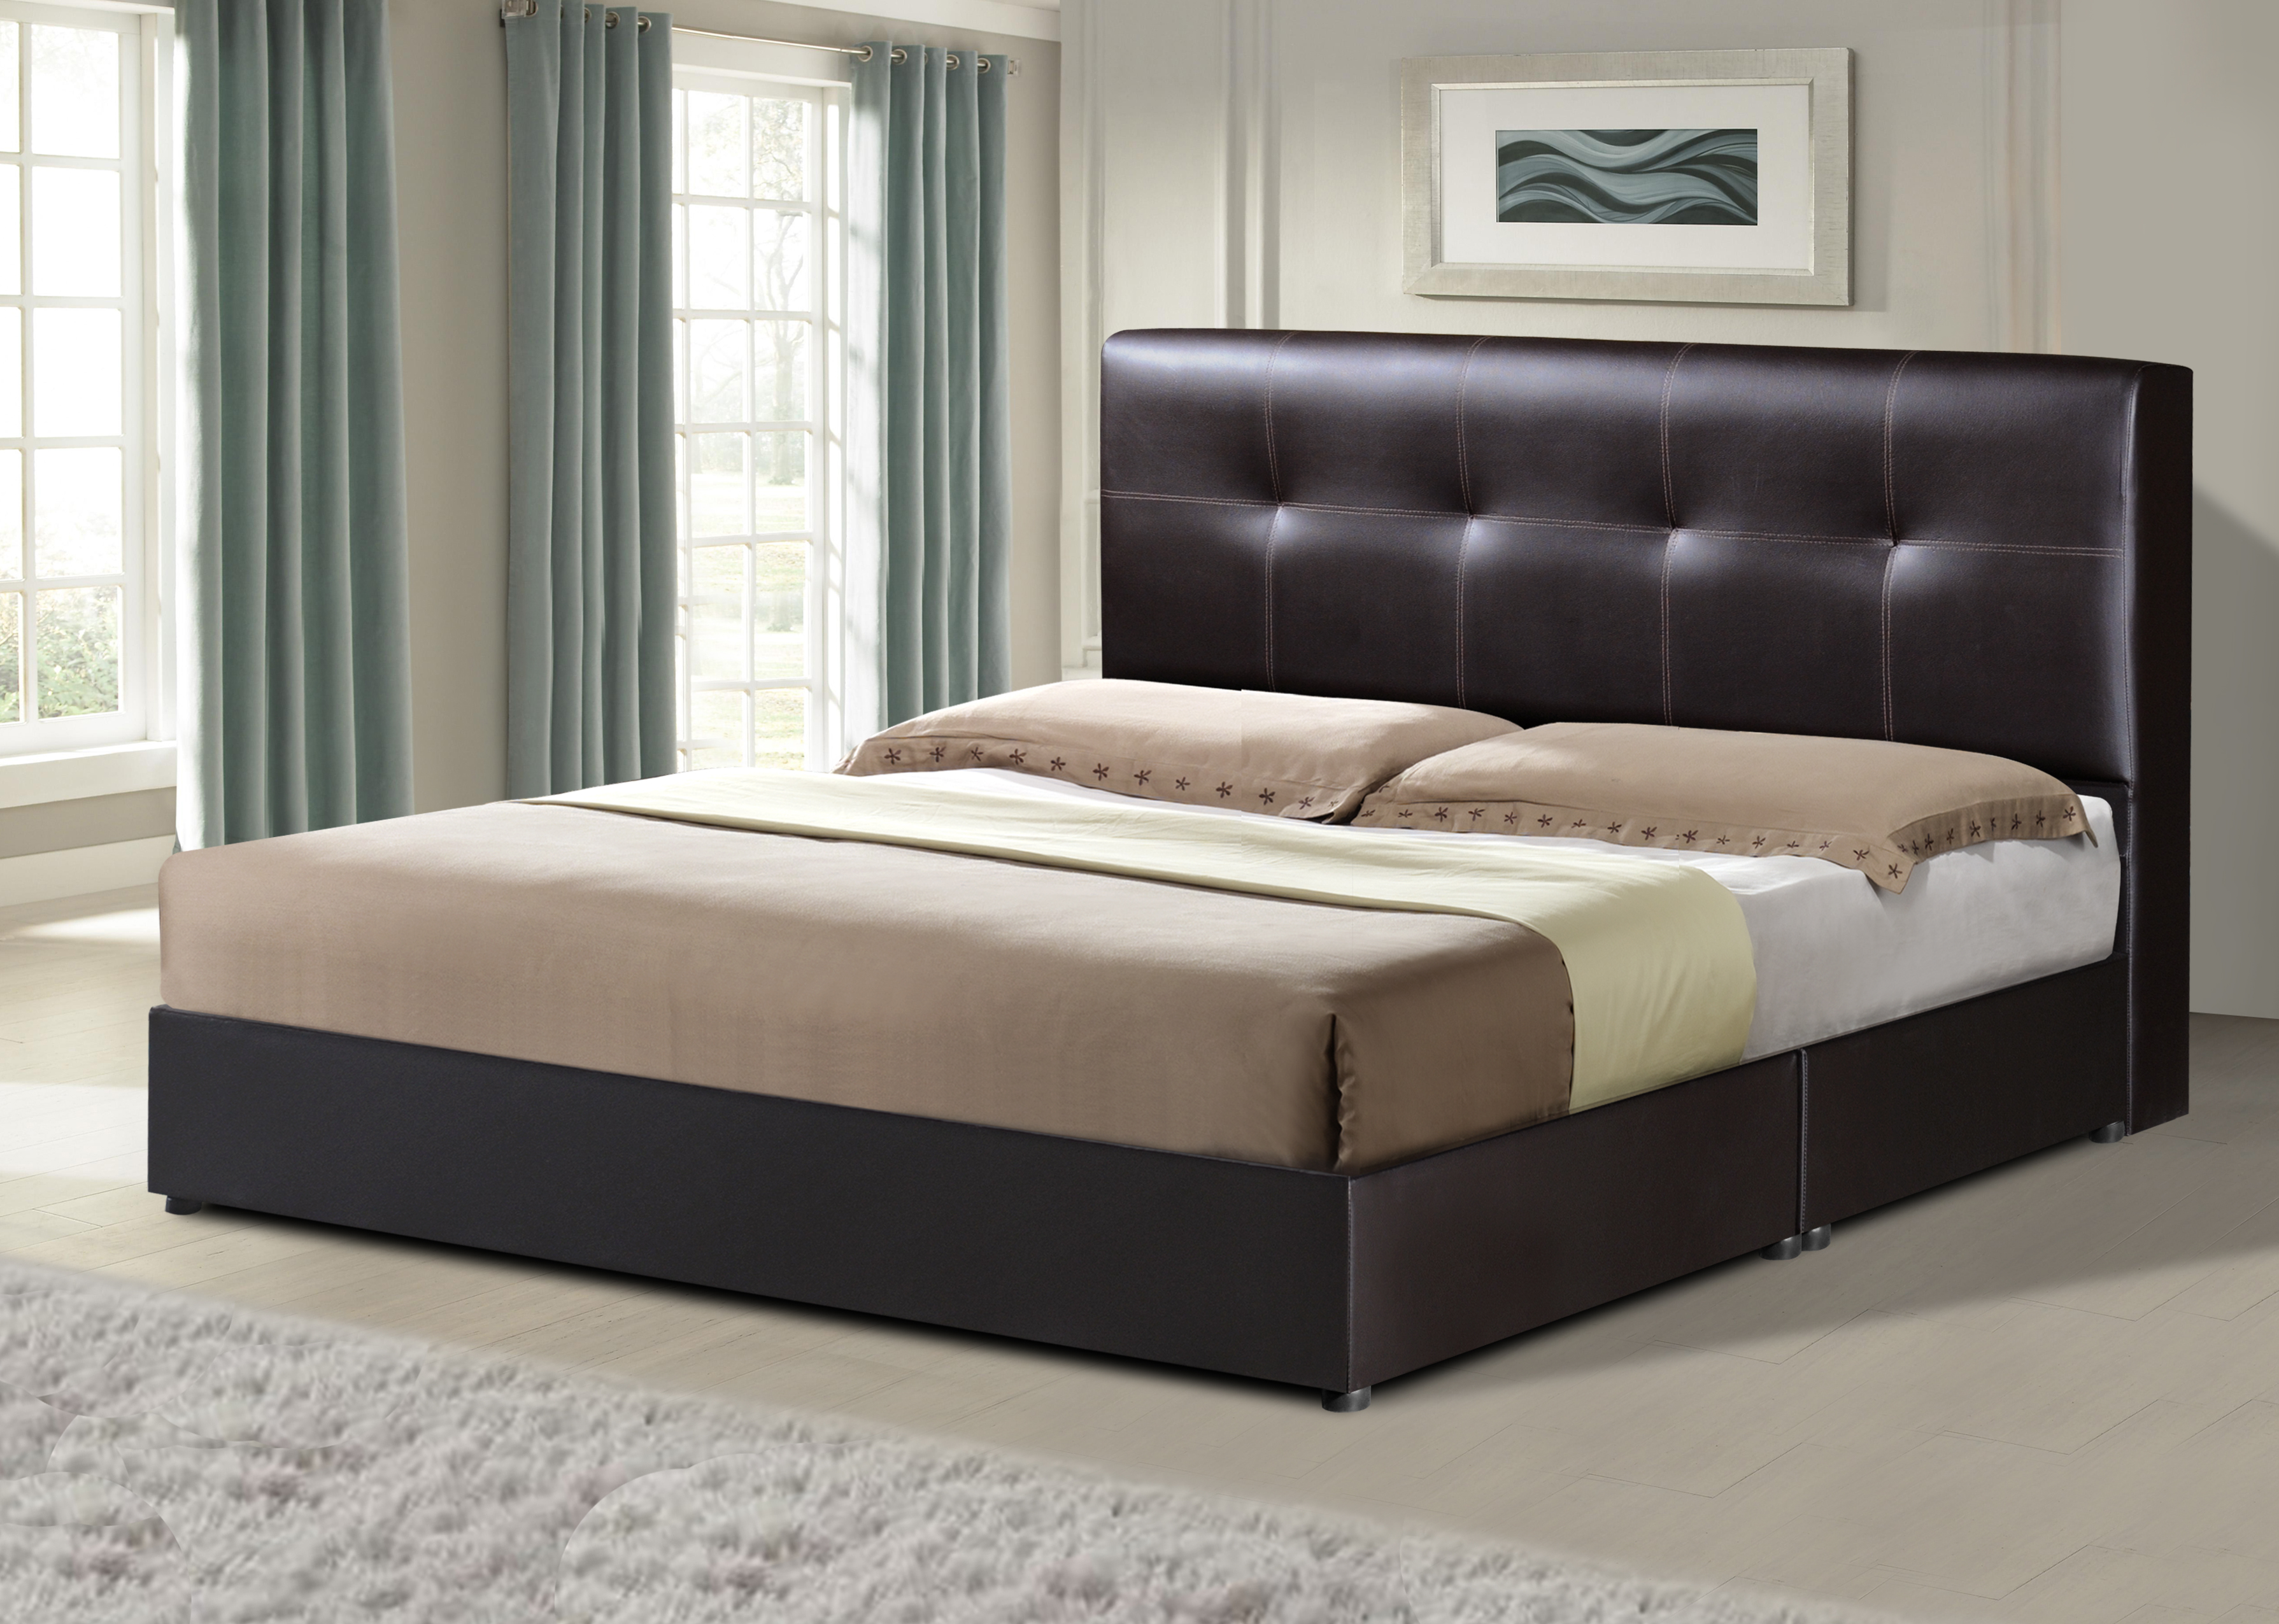 blueprints full frame size platform queen make nightstands in with king diy attached built designs bed japanese